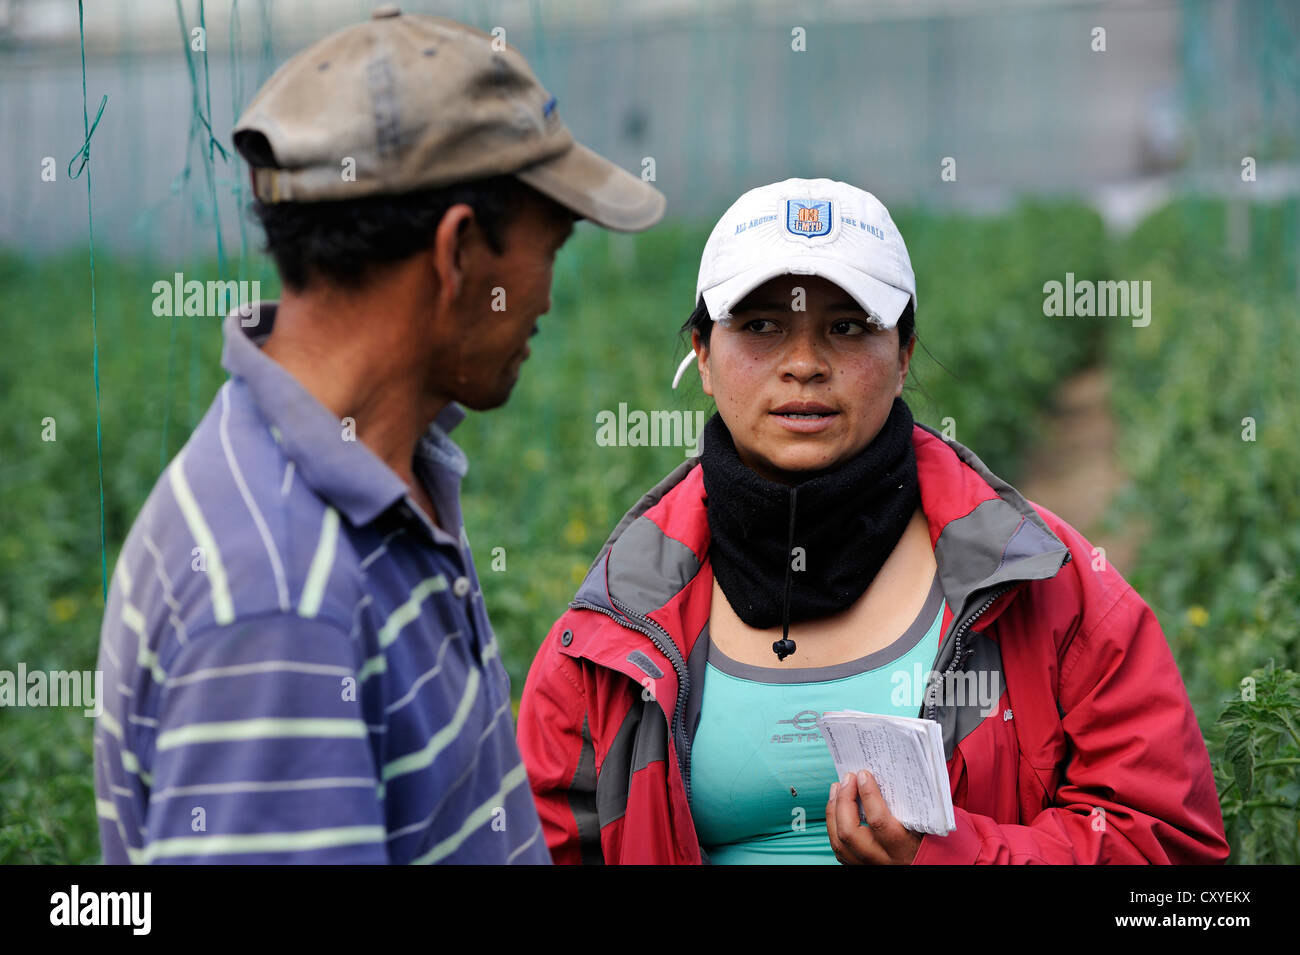 Agricultural engineer, aid worker, advising farmer in a greenhouse with tomato plants (Solanum lycopersicum) Stock Photo